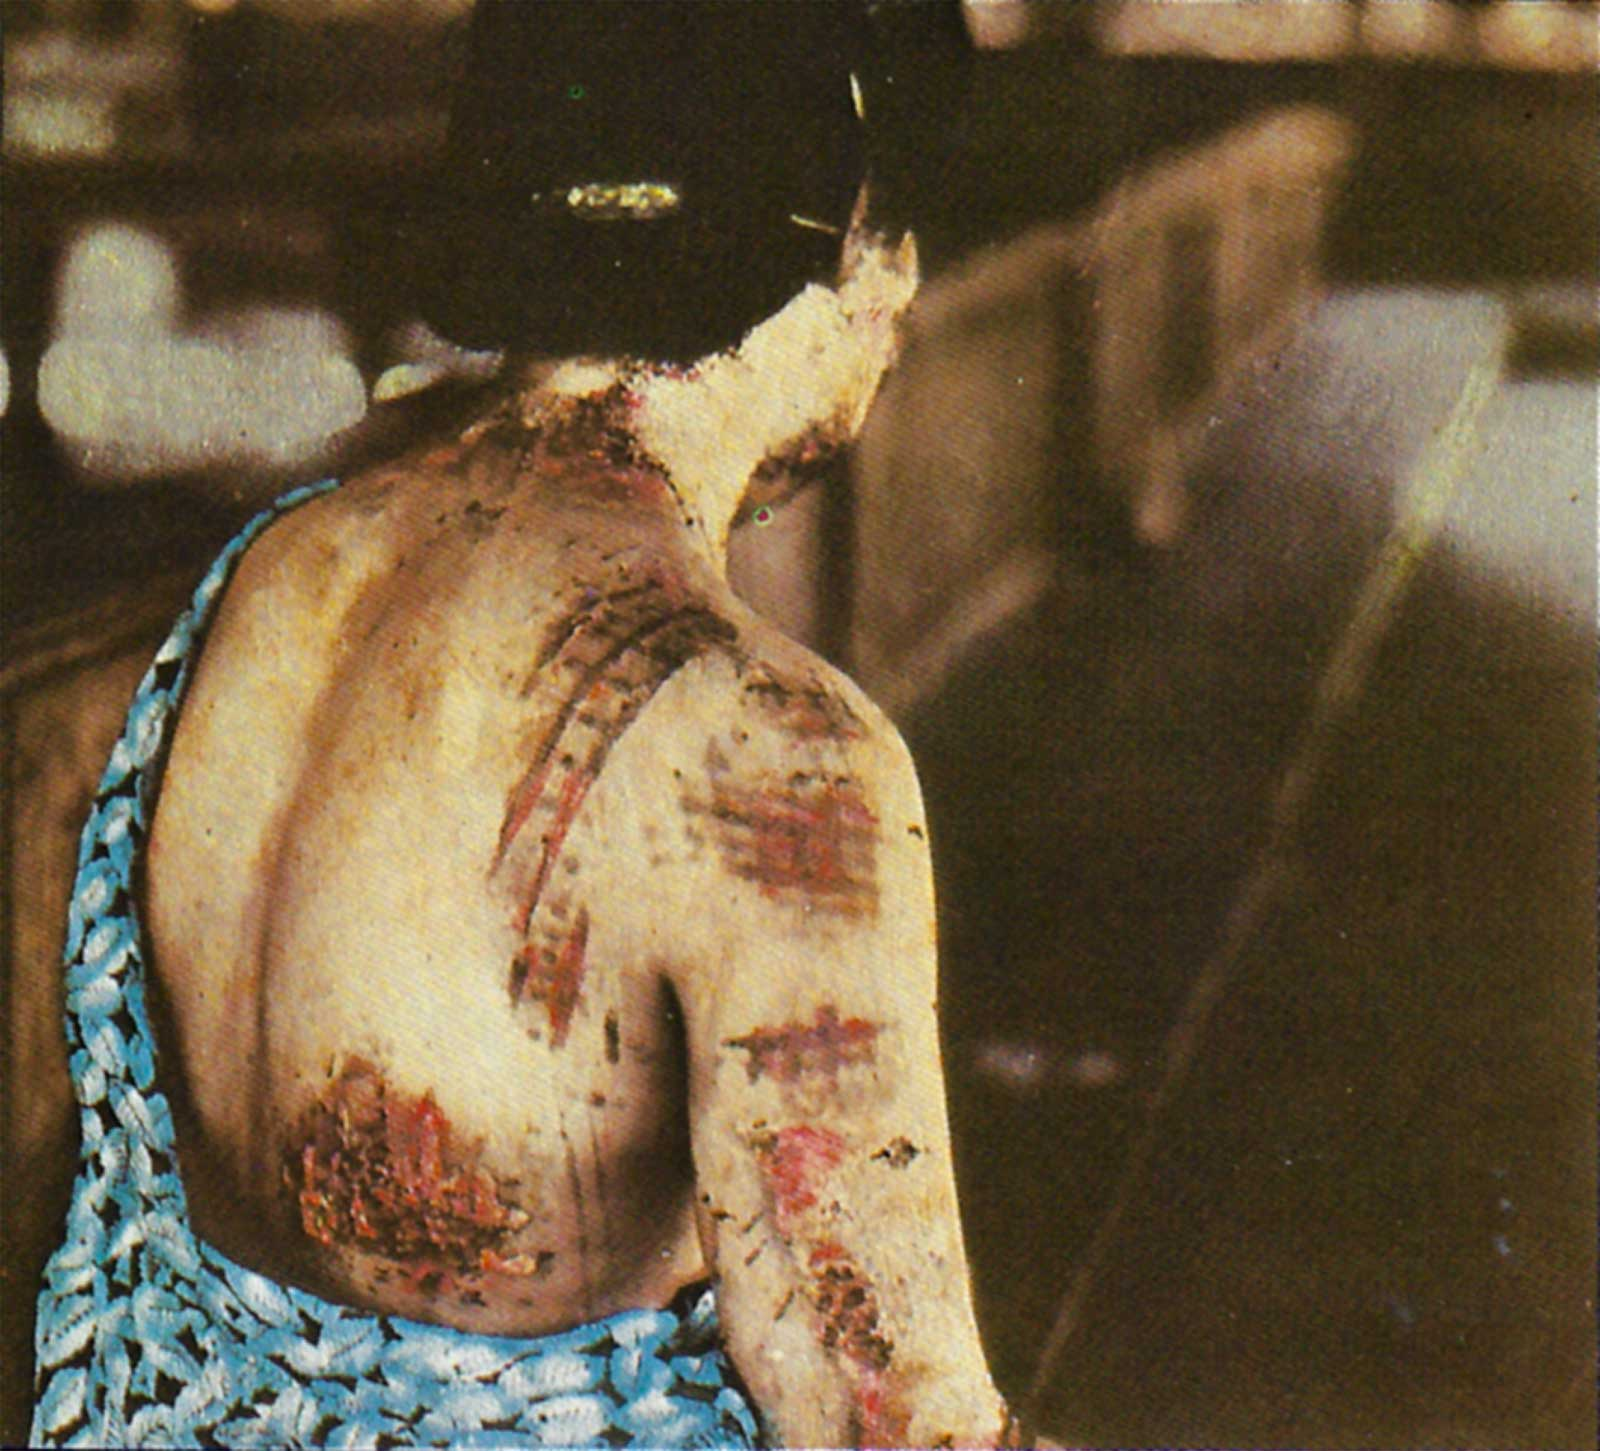 The burns are in a pattern corresponding to the dark portions of the kimono she was wearing at the time of the explosion.